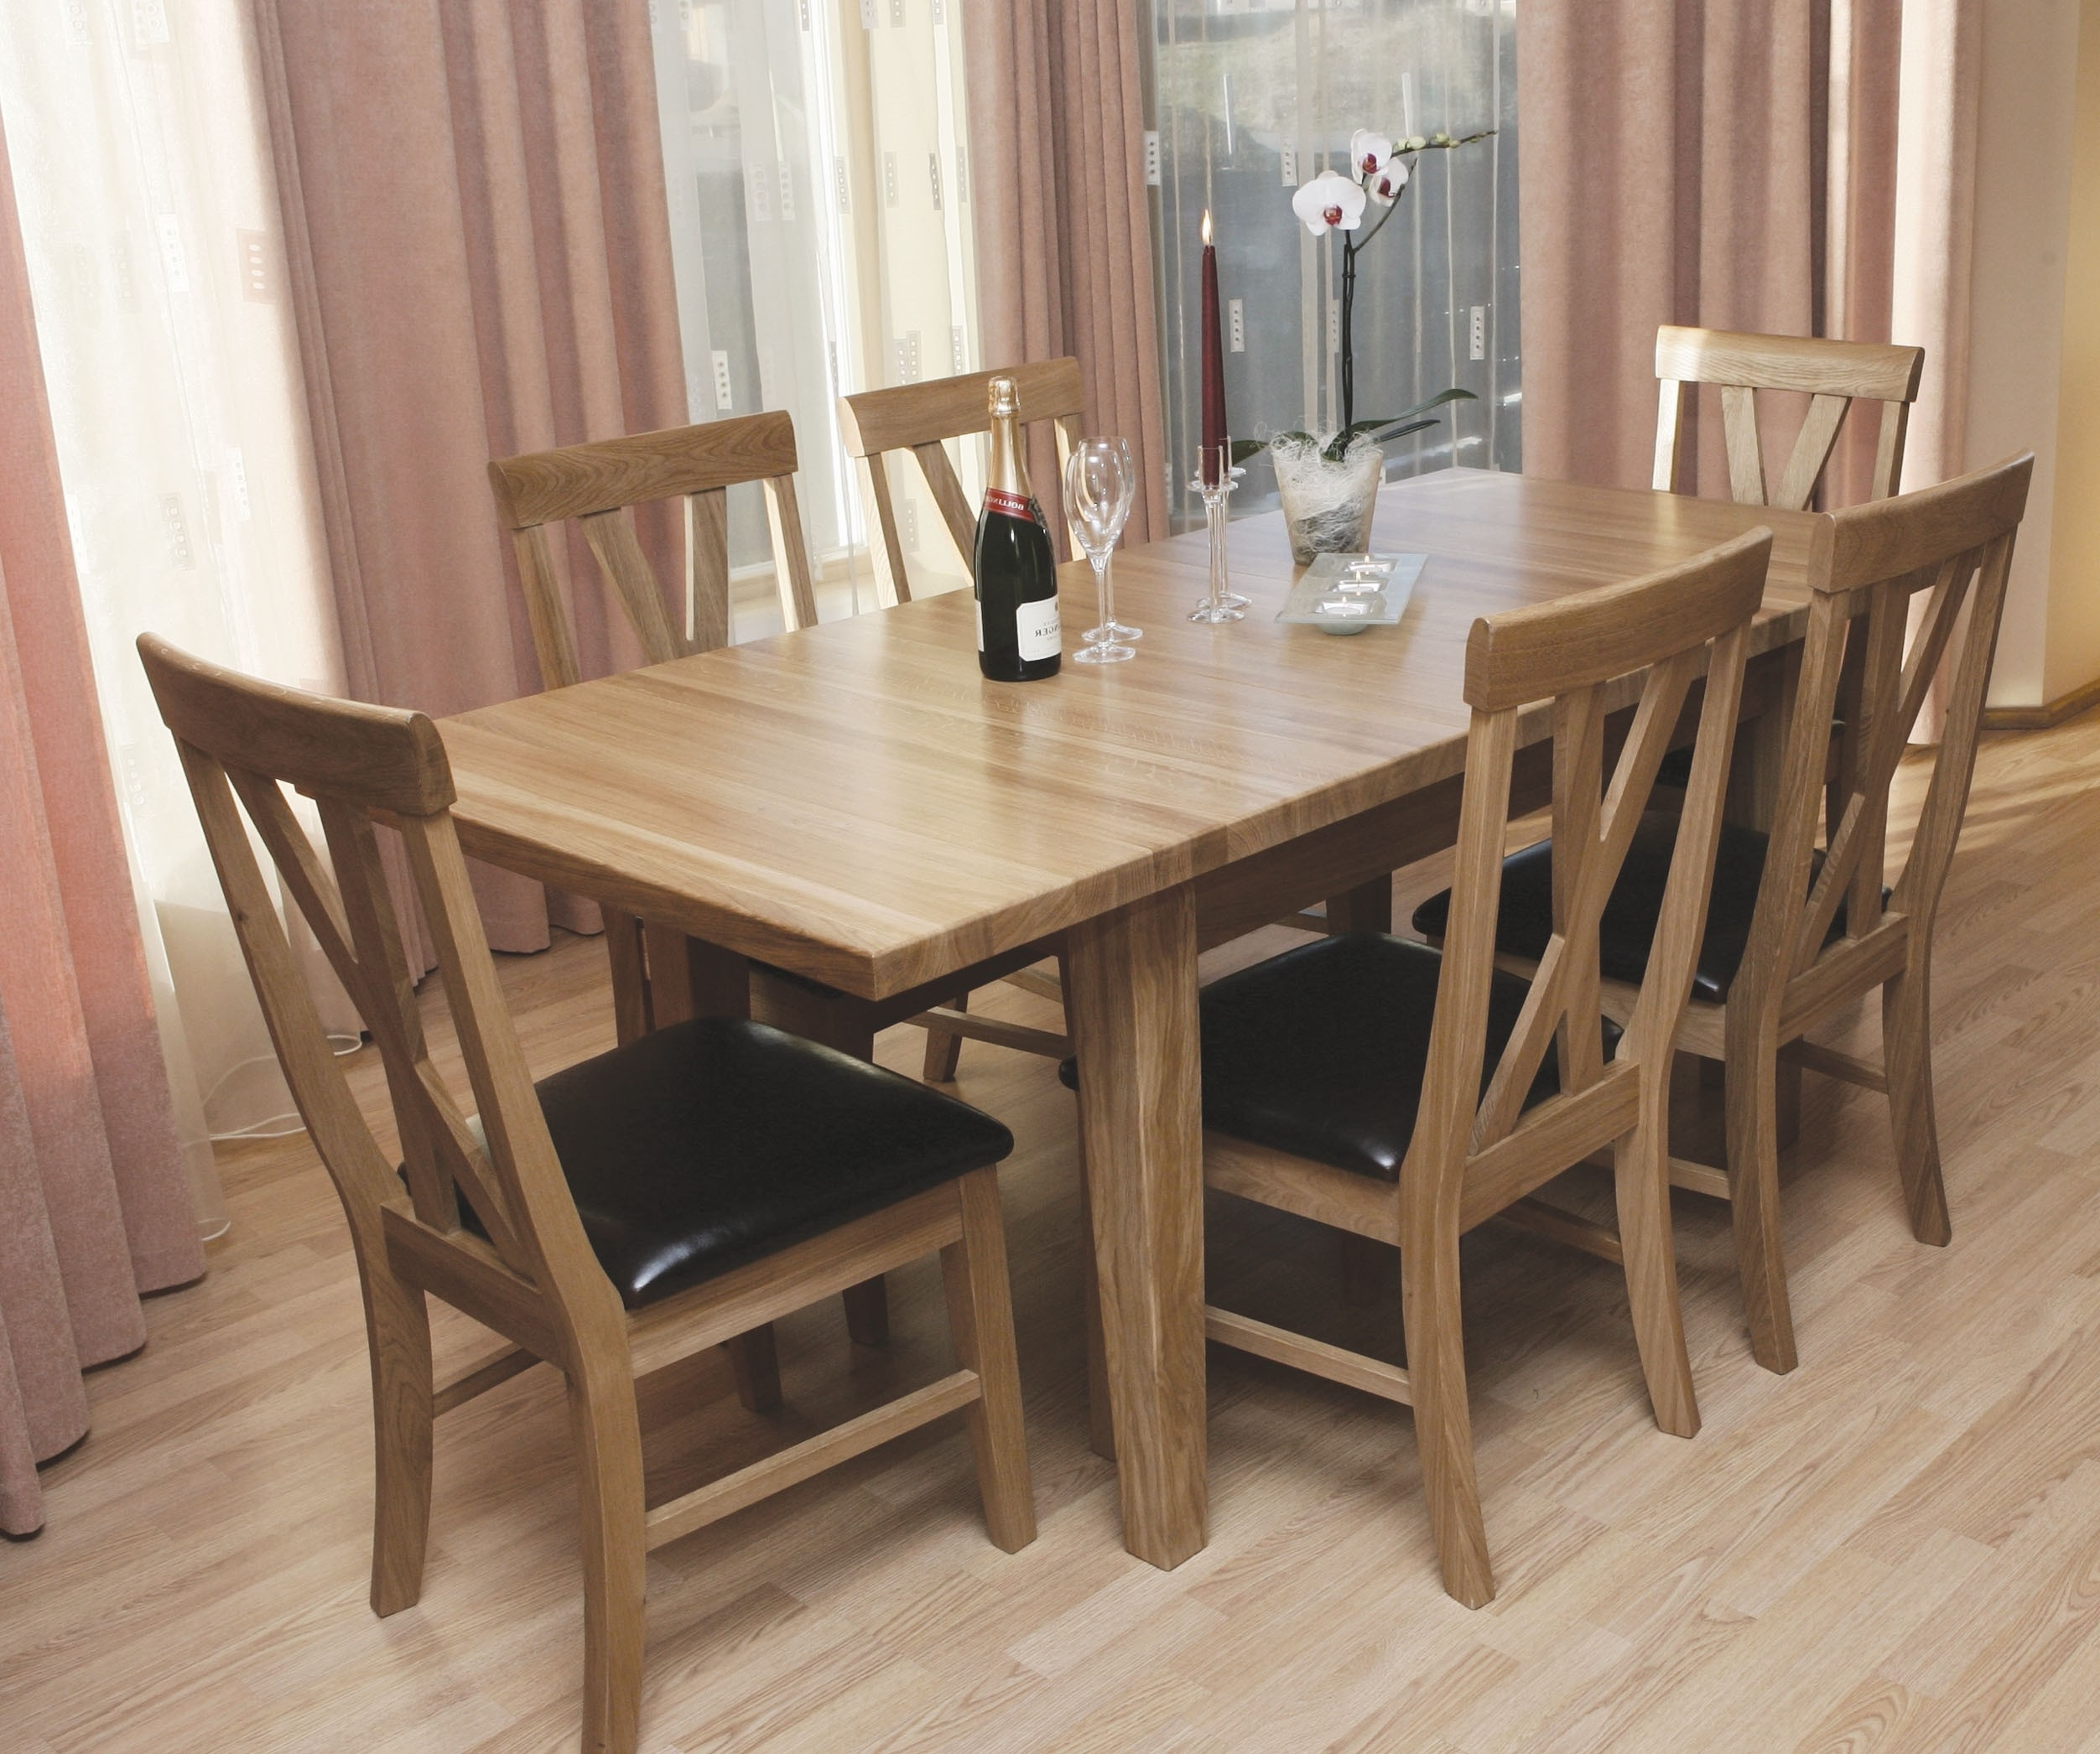 6 Seat Dining Tables And Chairs With Best And Newest Tch Warwick 6 Seat Dining Table & Chairs Set Solid Oak – Furniture (View 3 of 25)